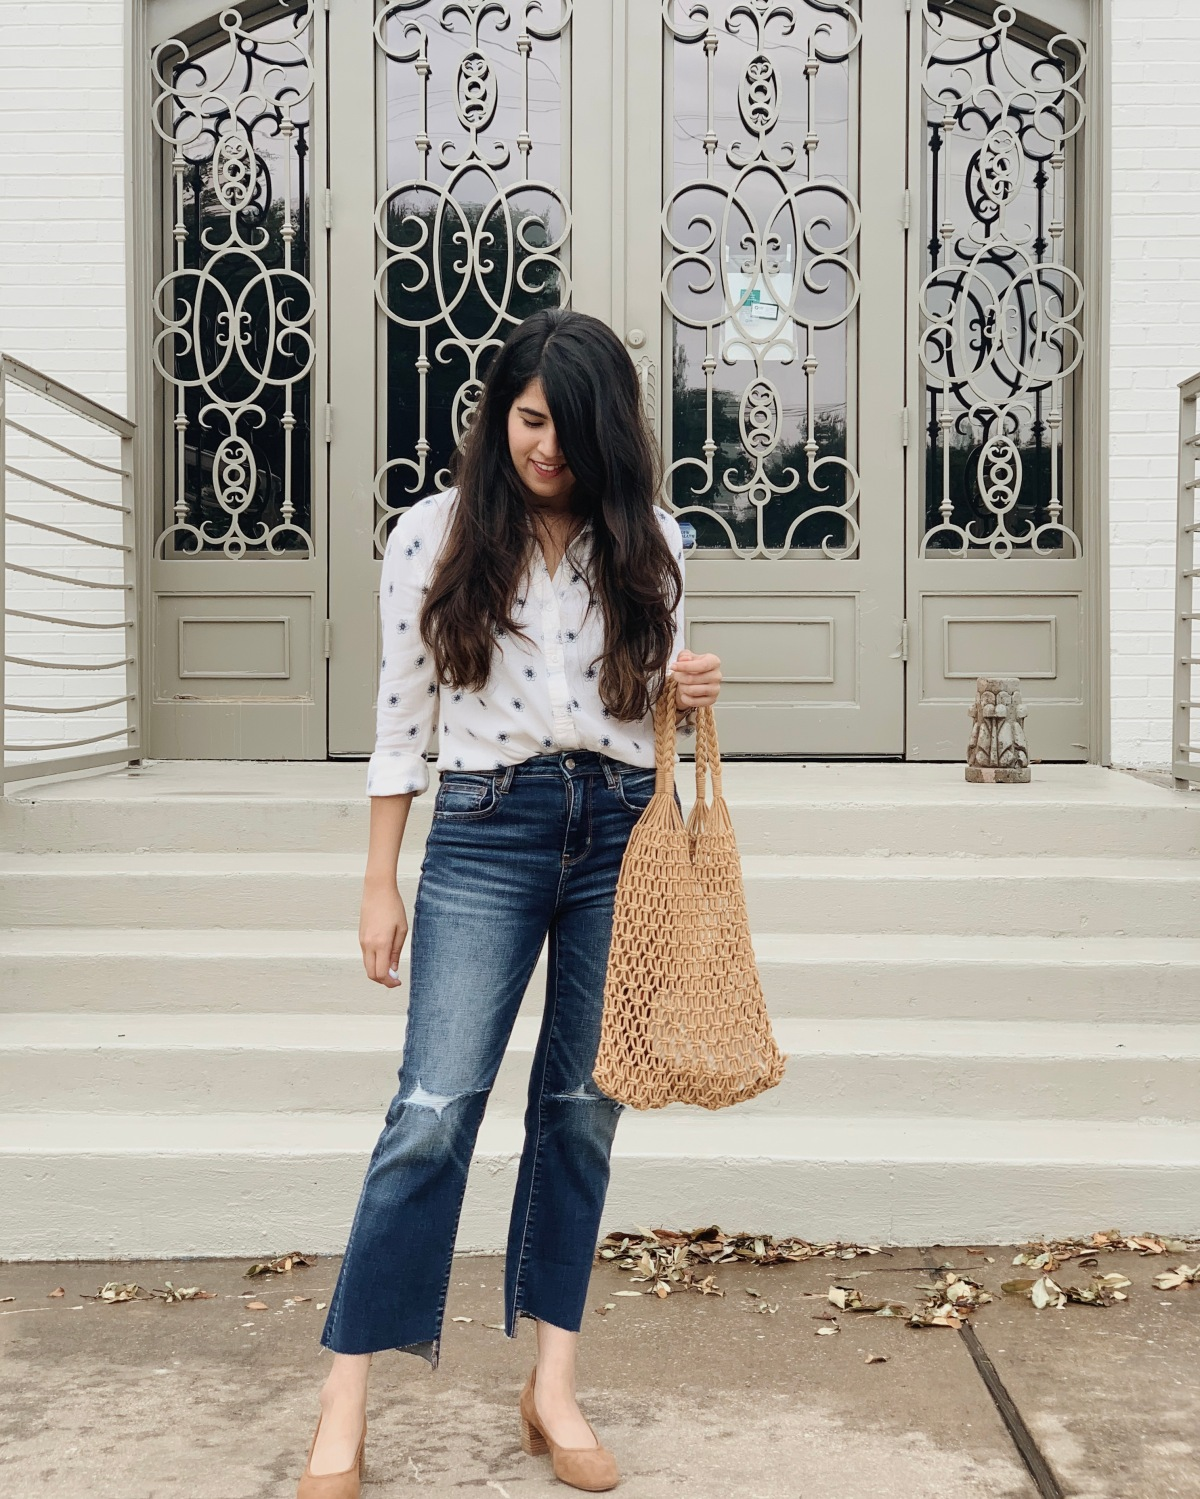 Tips to Dress up Skinny as a Curvy PetiteWoman